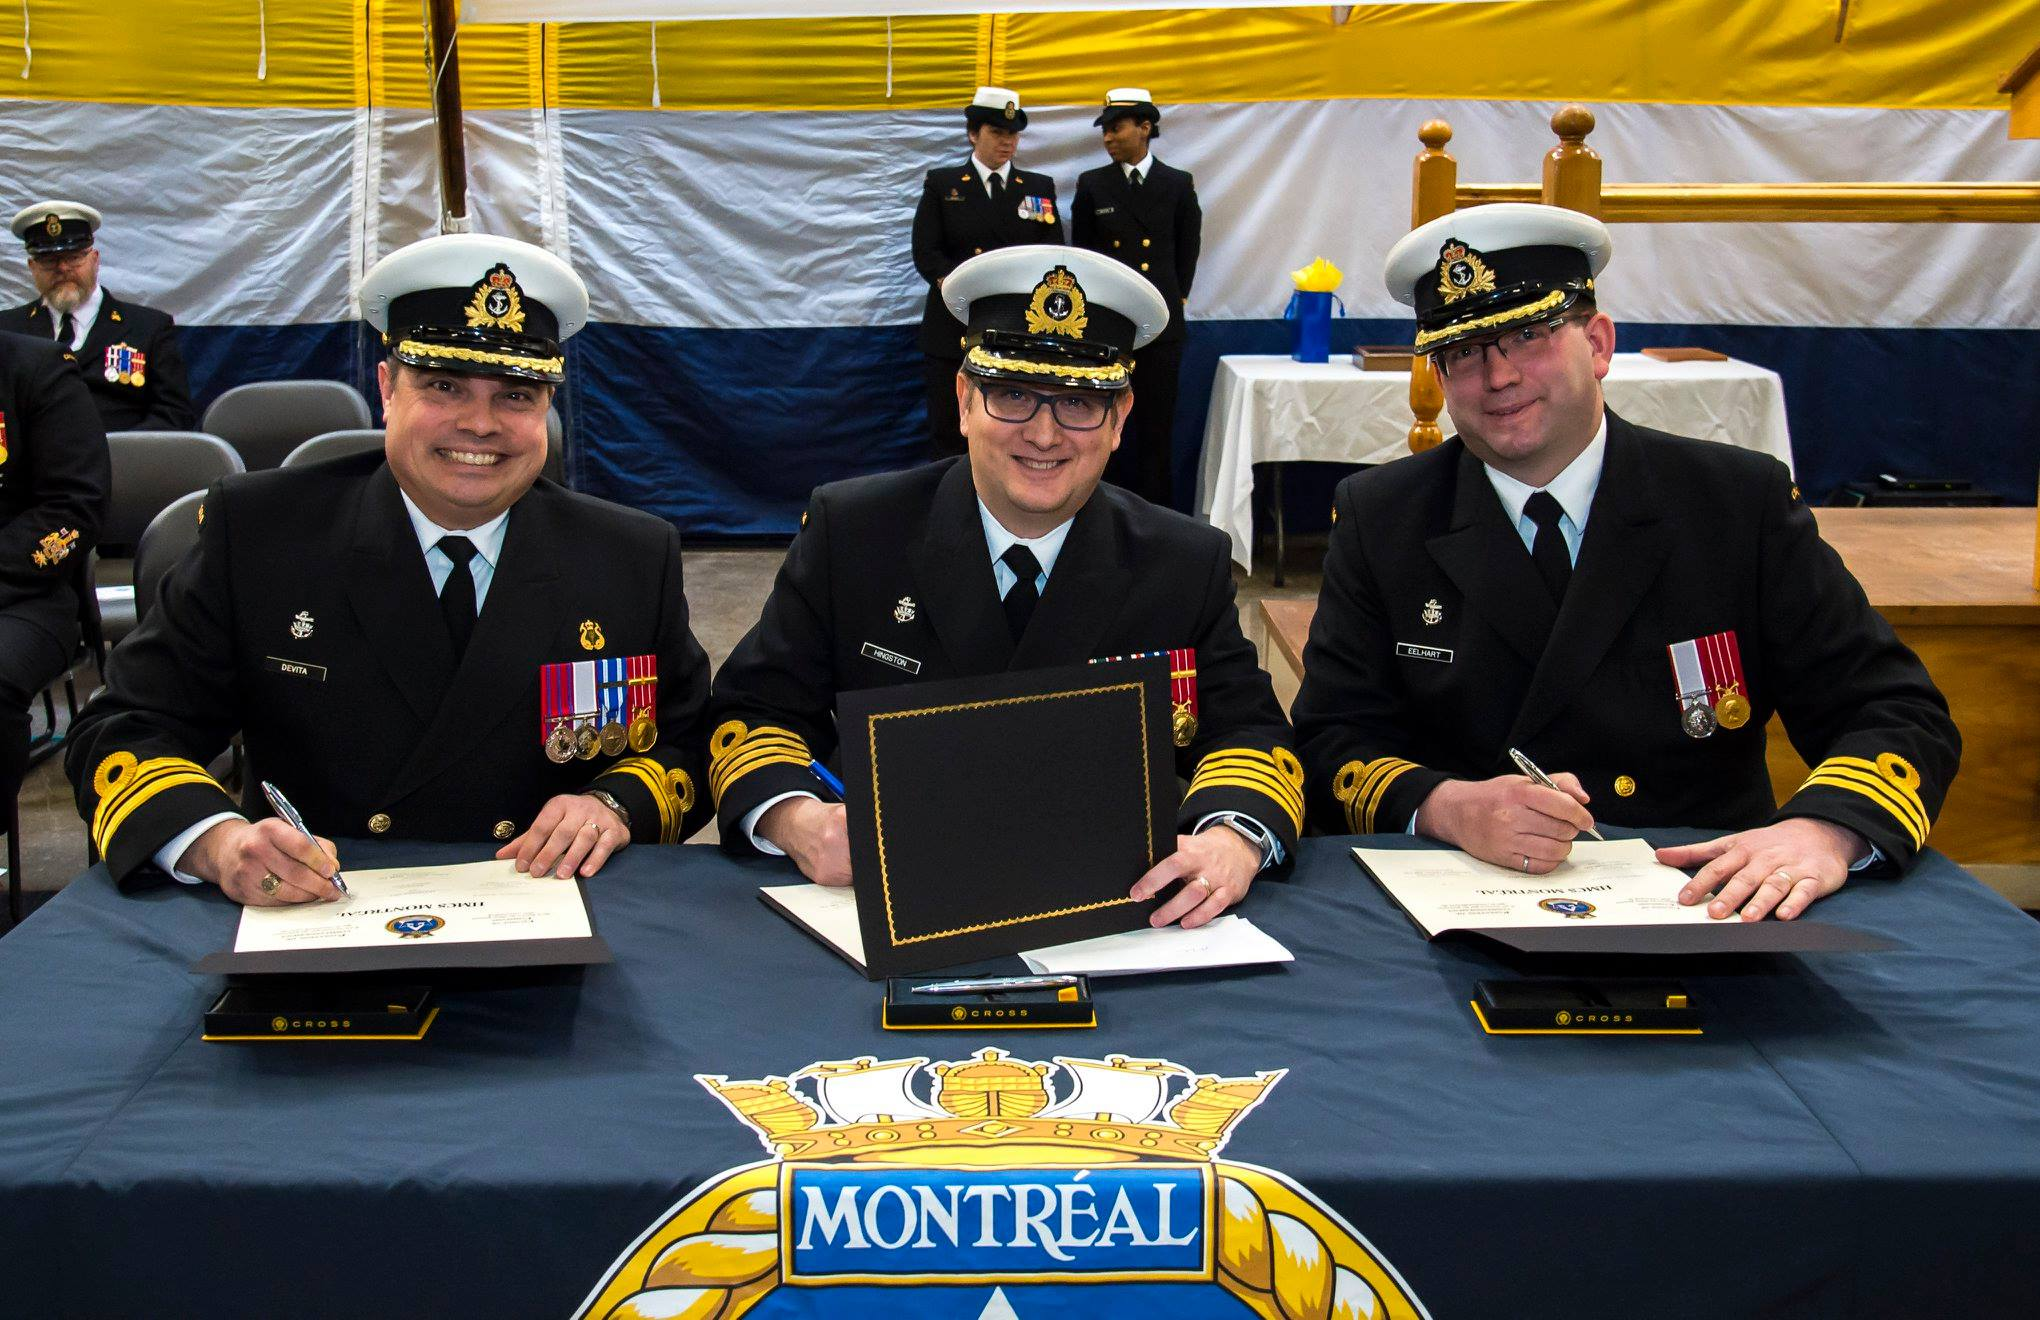 New CO for HMCS Montréal